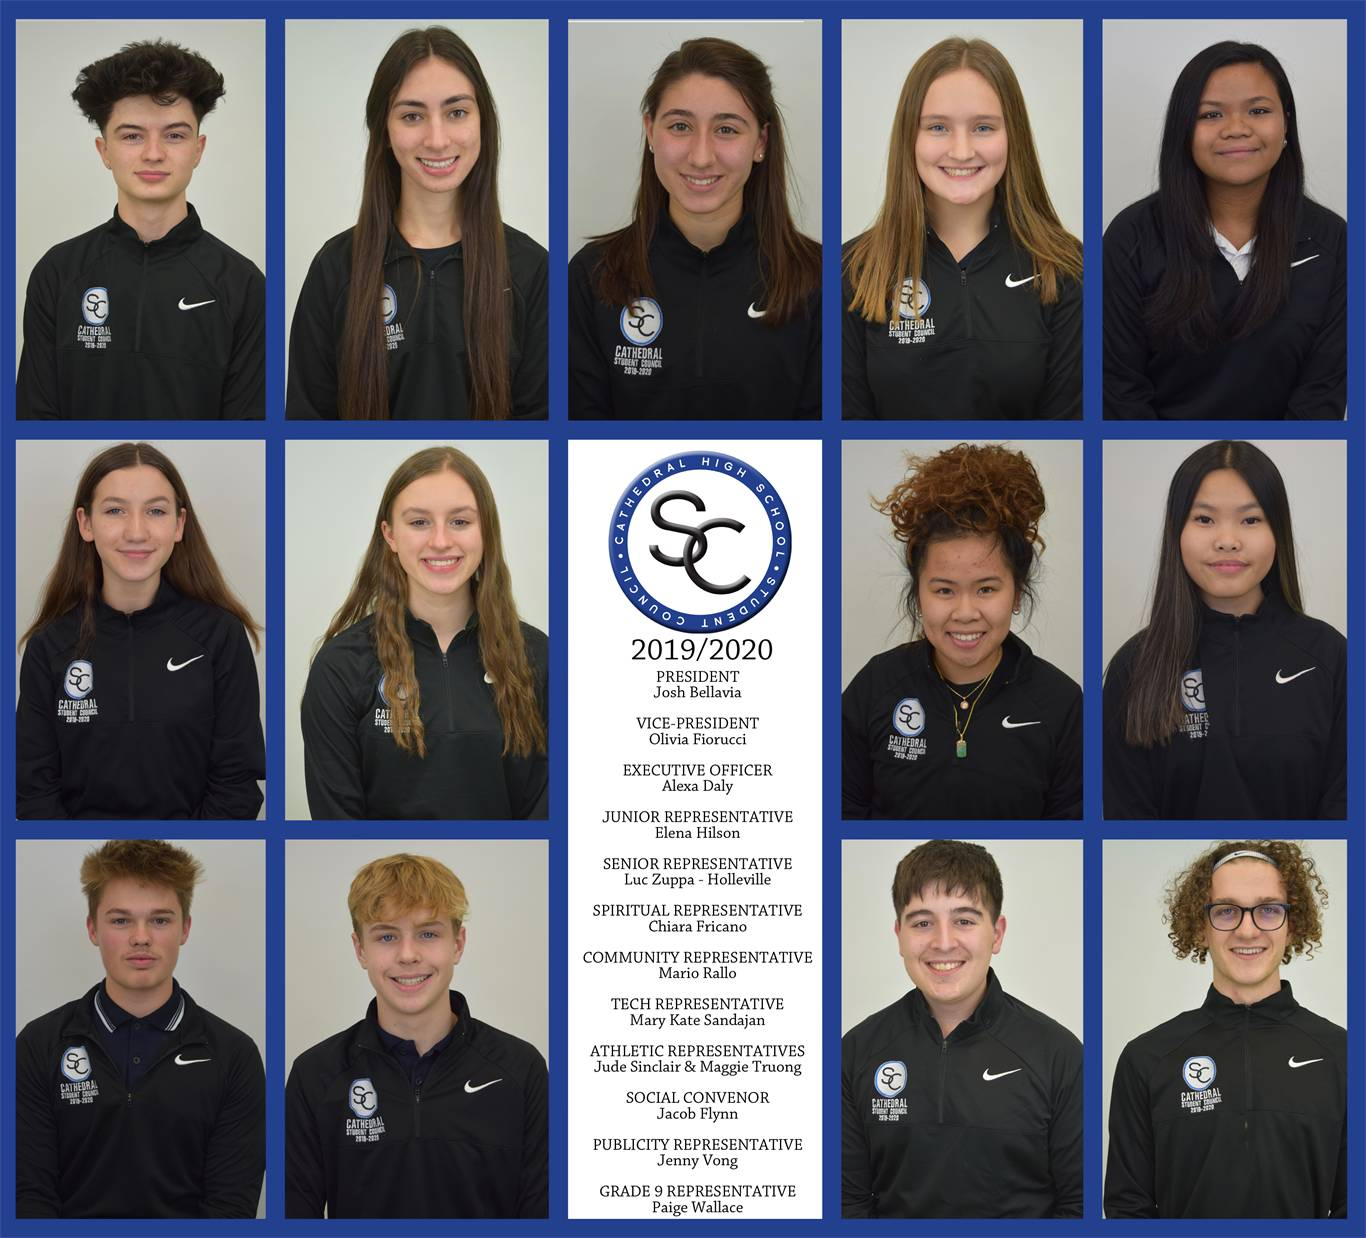 2019/2020 Student Council